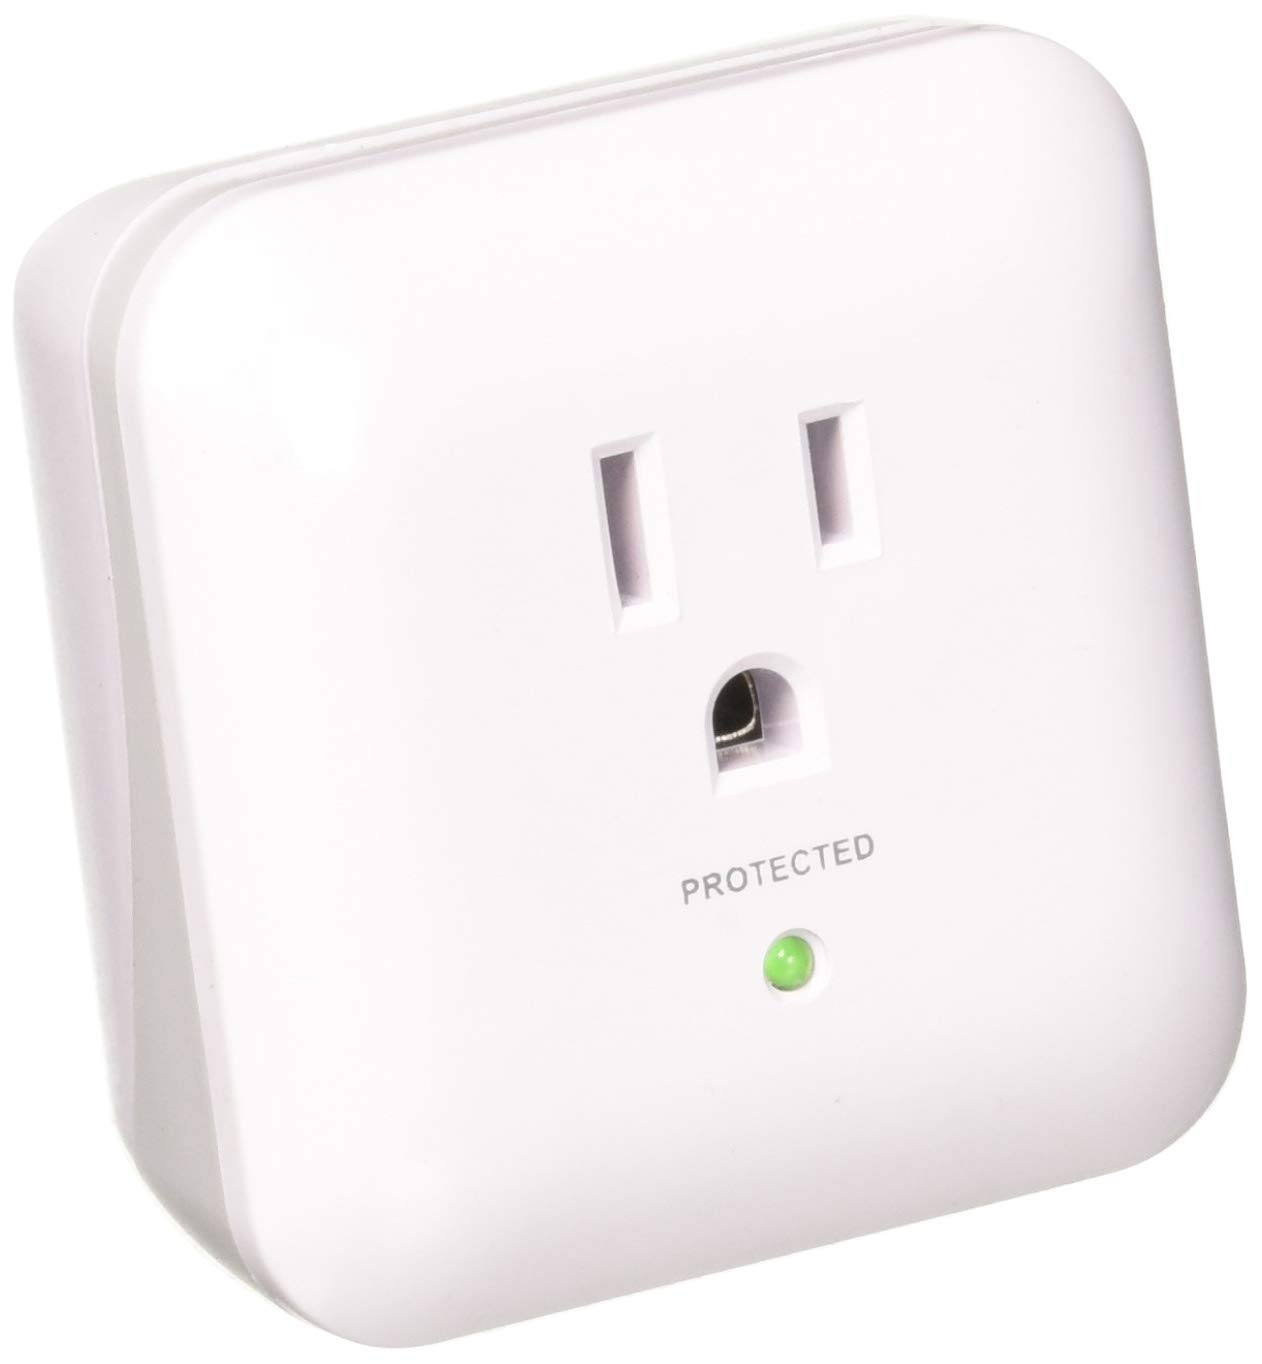 Monoprice 1 Outlet Surge Protector with End of Service Alarm, 900 Joules, White